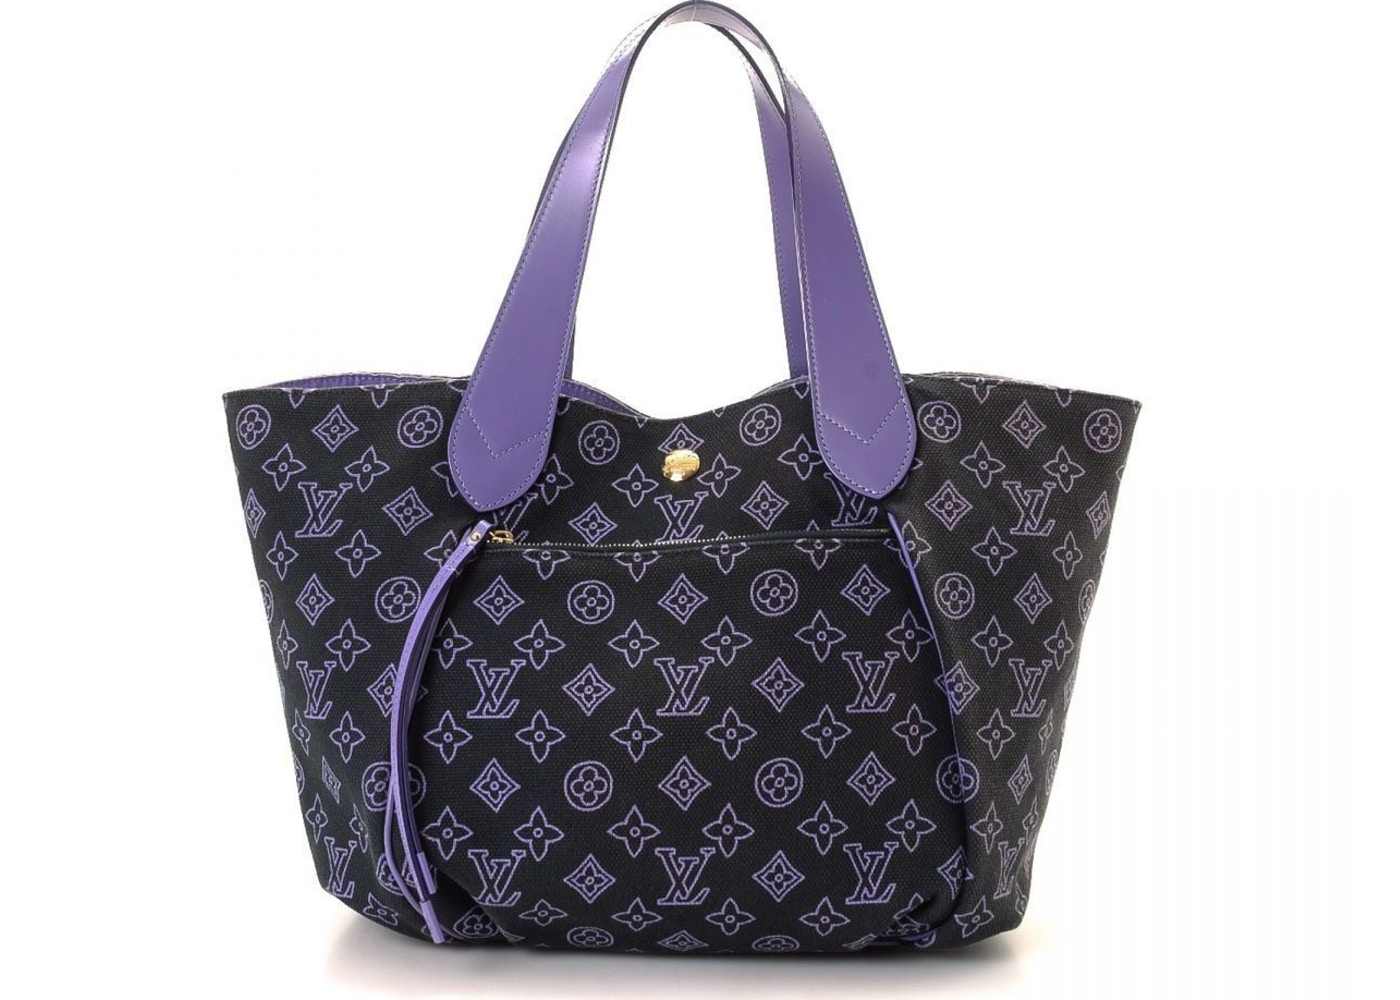 d82c31697 Louis Vuitton Cabas Monogram Ipanema GM Purple/Black